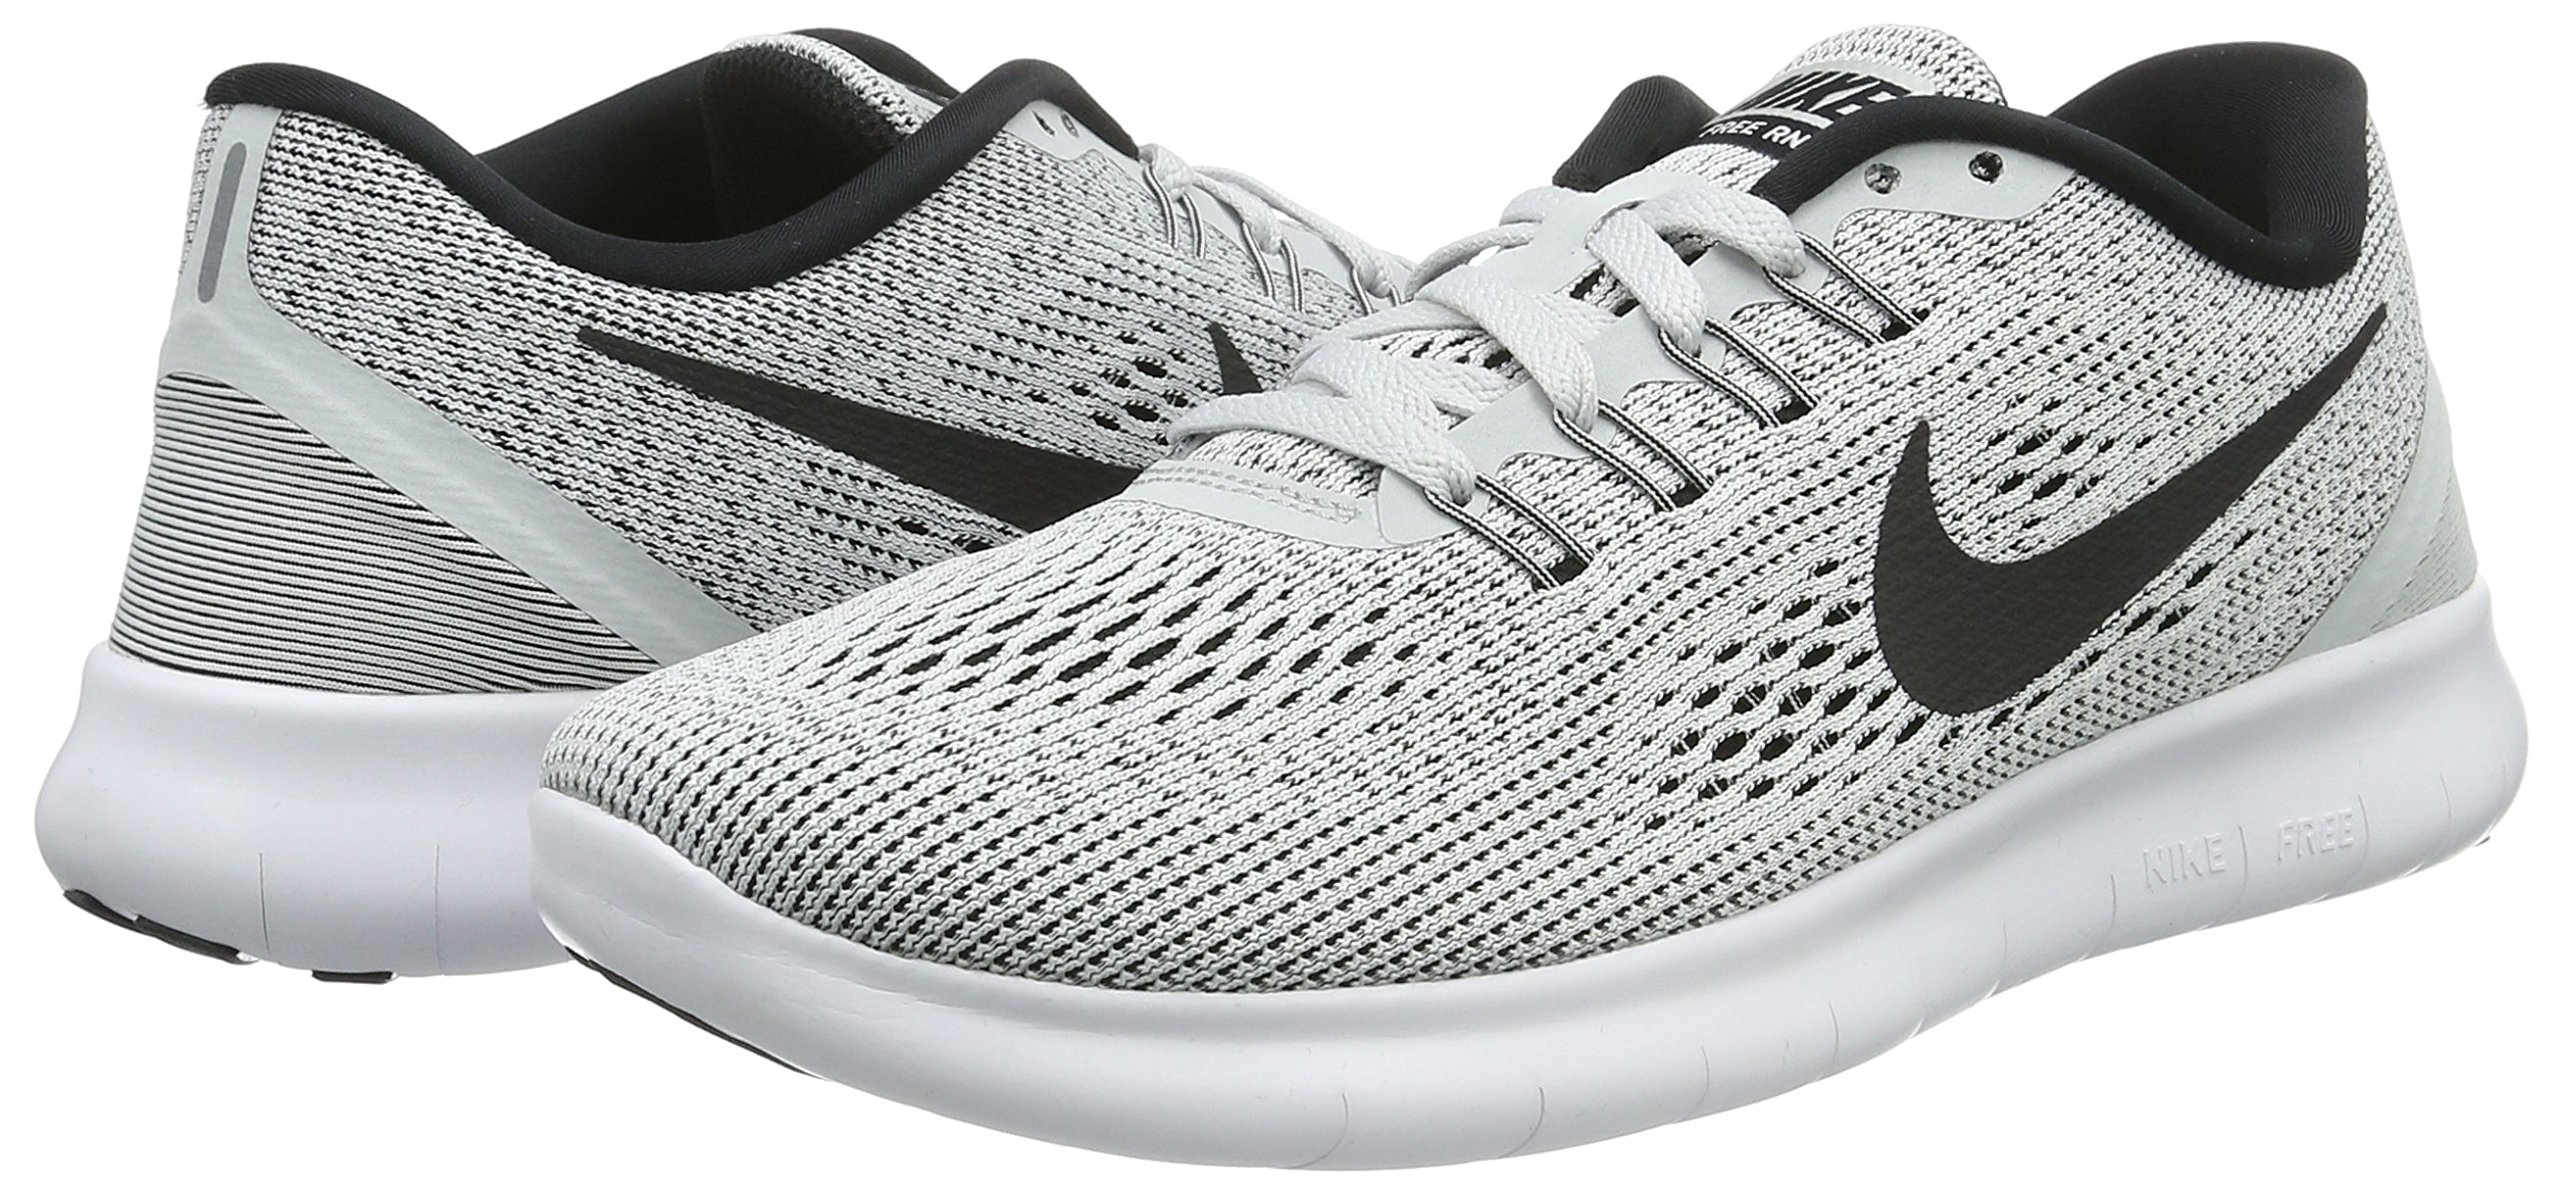 Nike Womens Free RN Running Shoe White/Black/Pure Platinum 6 by Nike (Image #6)